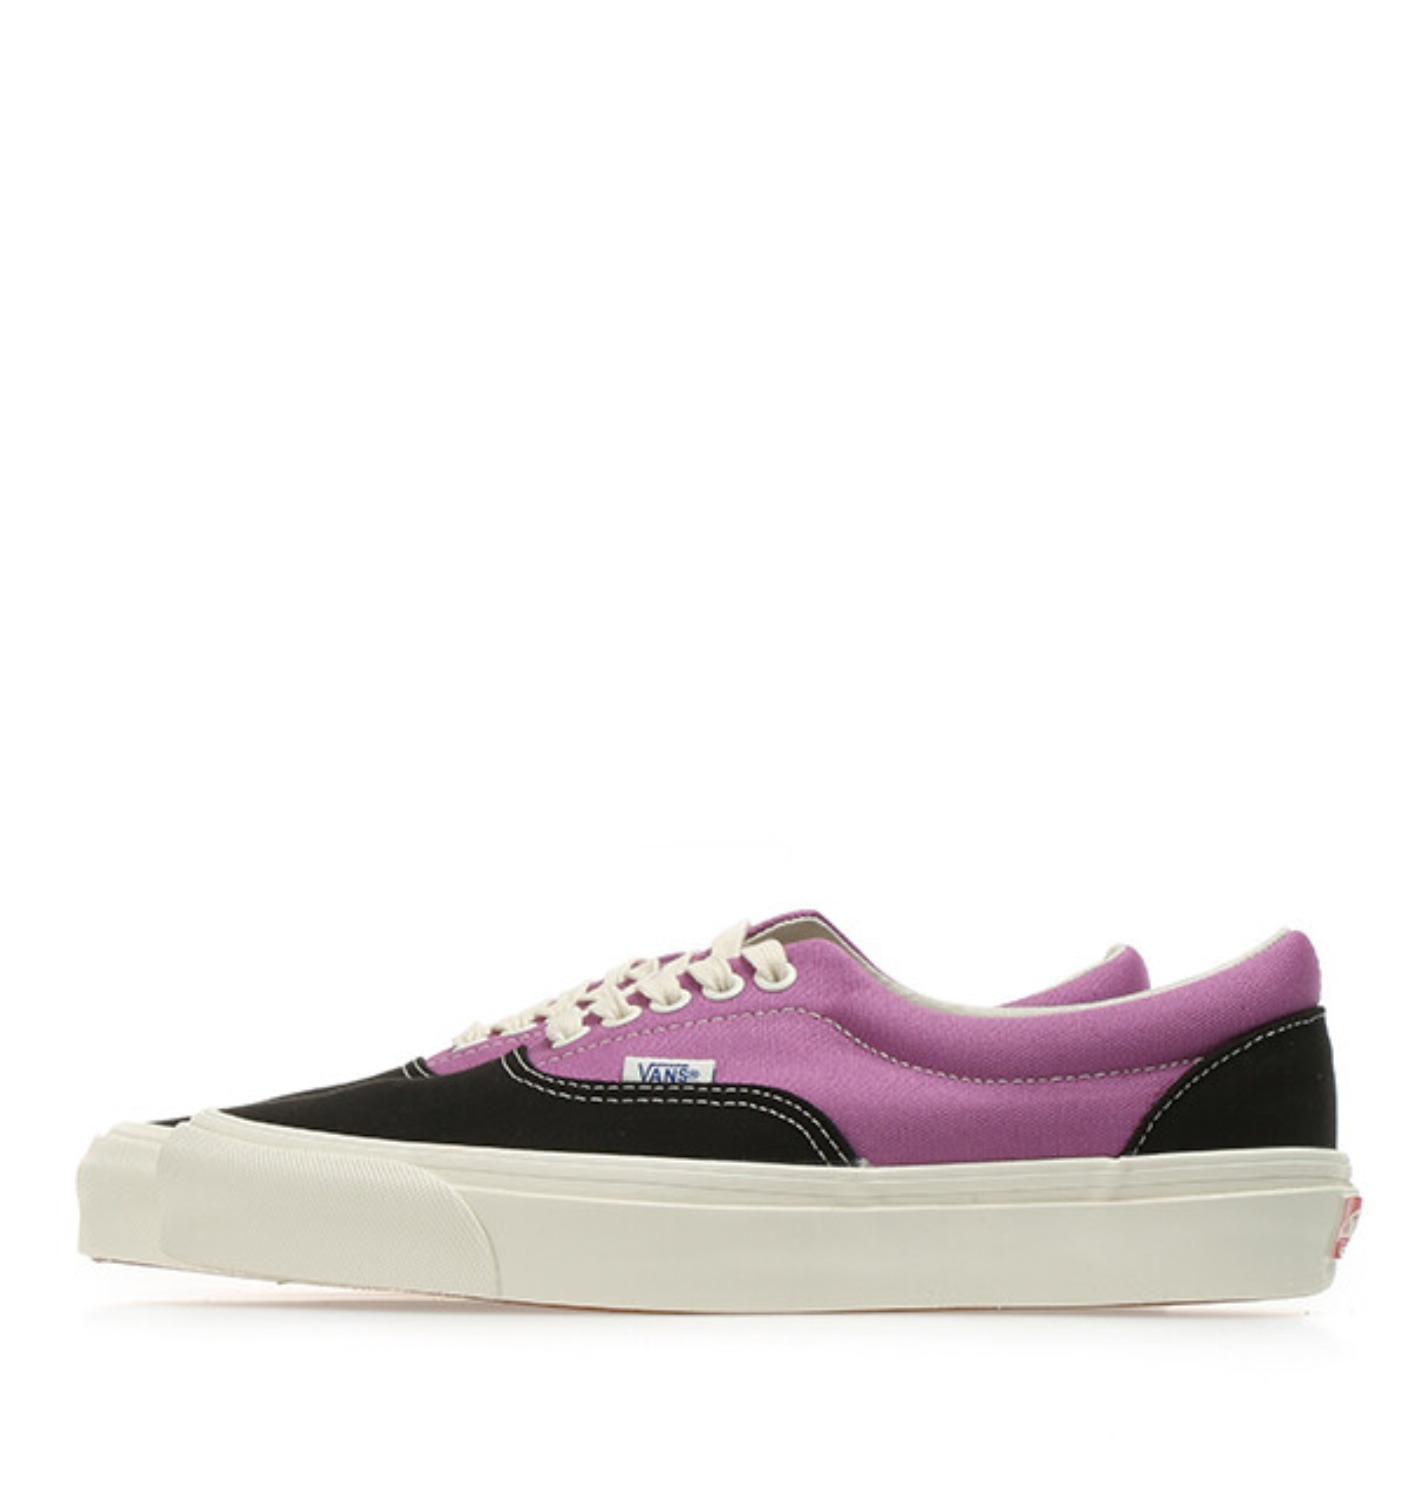 OG ERA LX(CANVAS) BLACK/MULBERRY